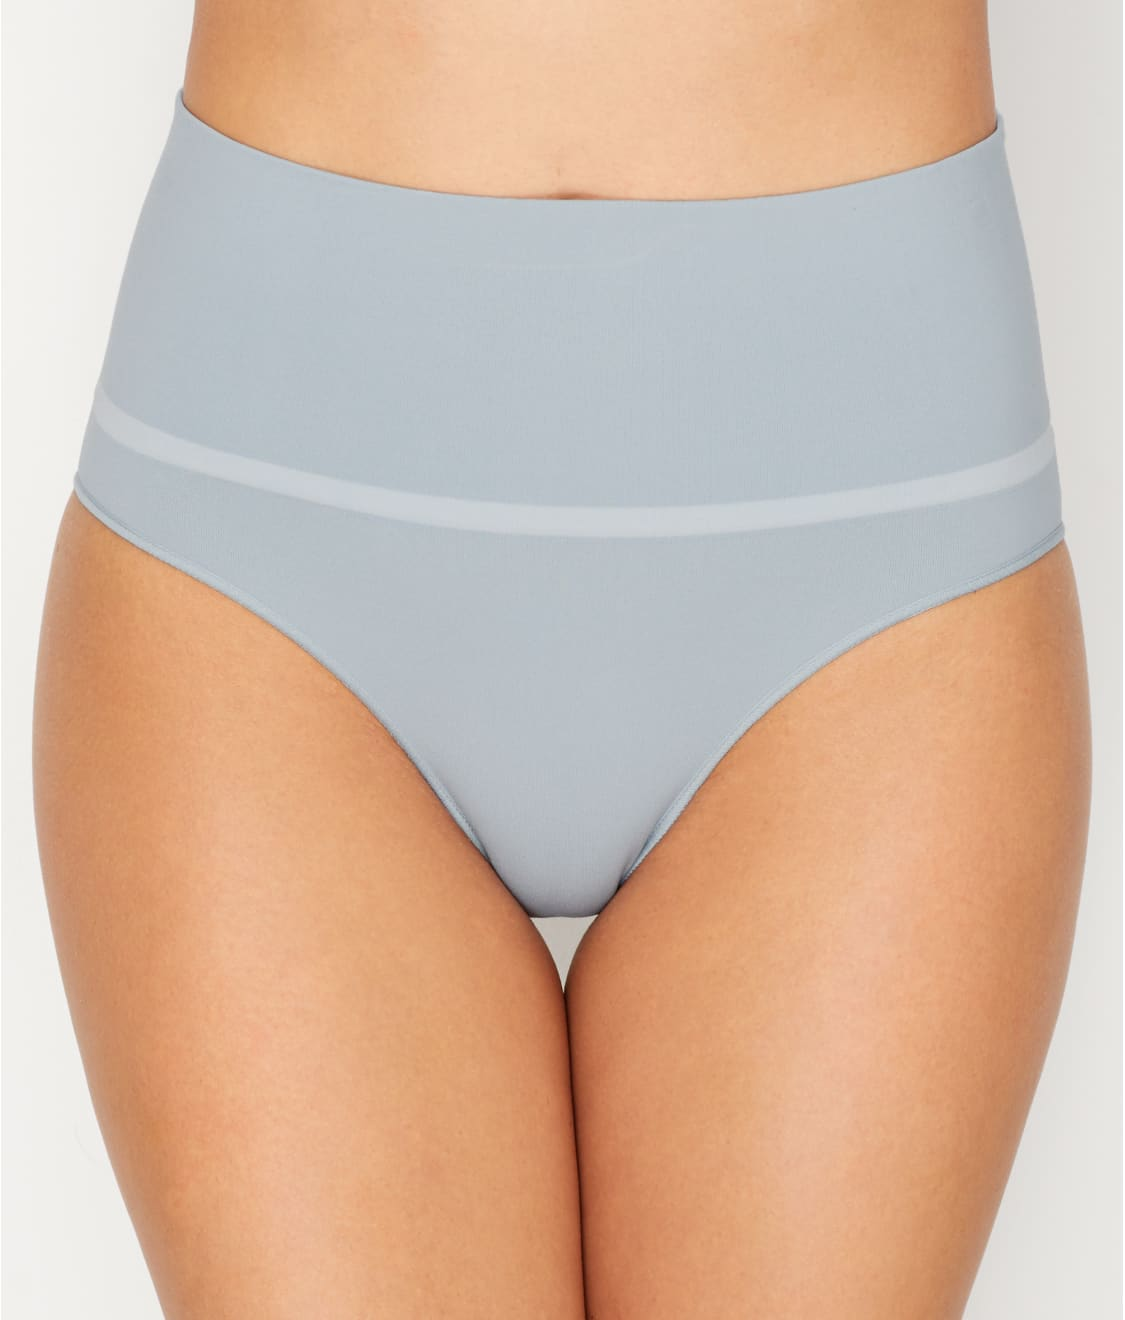 f59e82853c0 See Everyday Shaping Brief in Whisper Blue